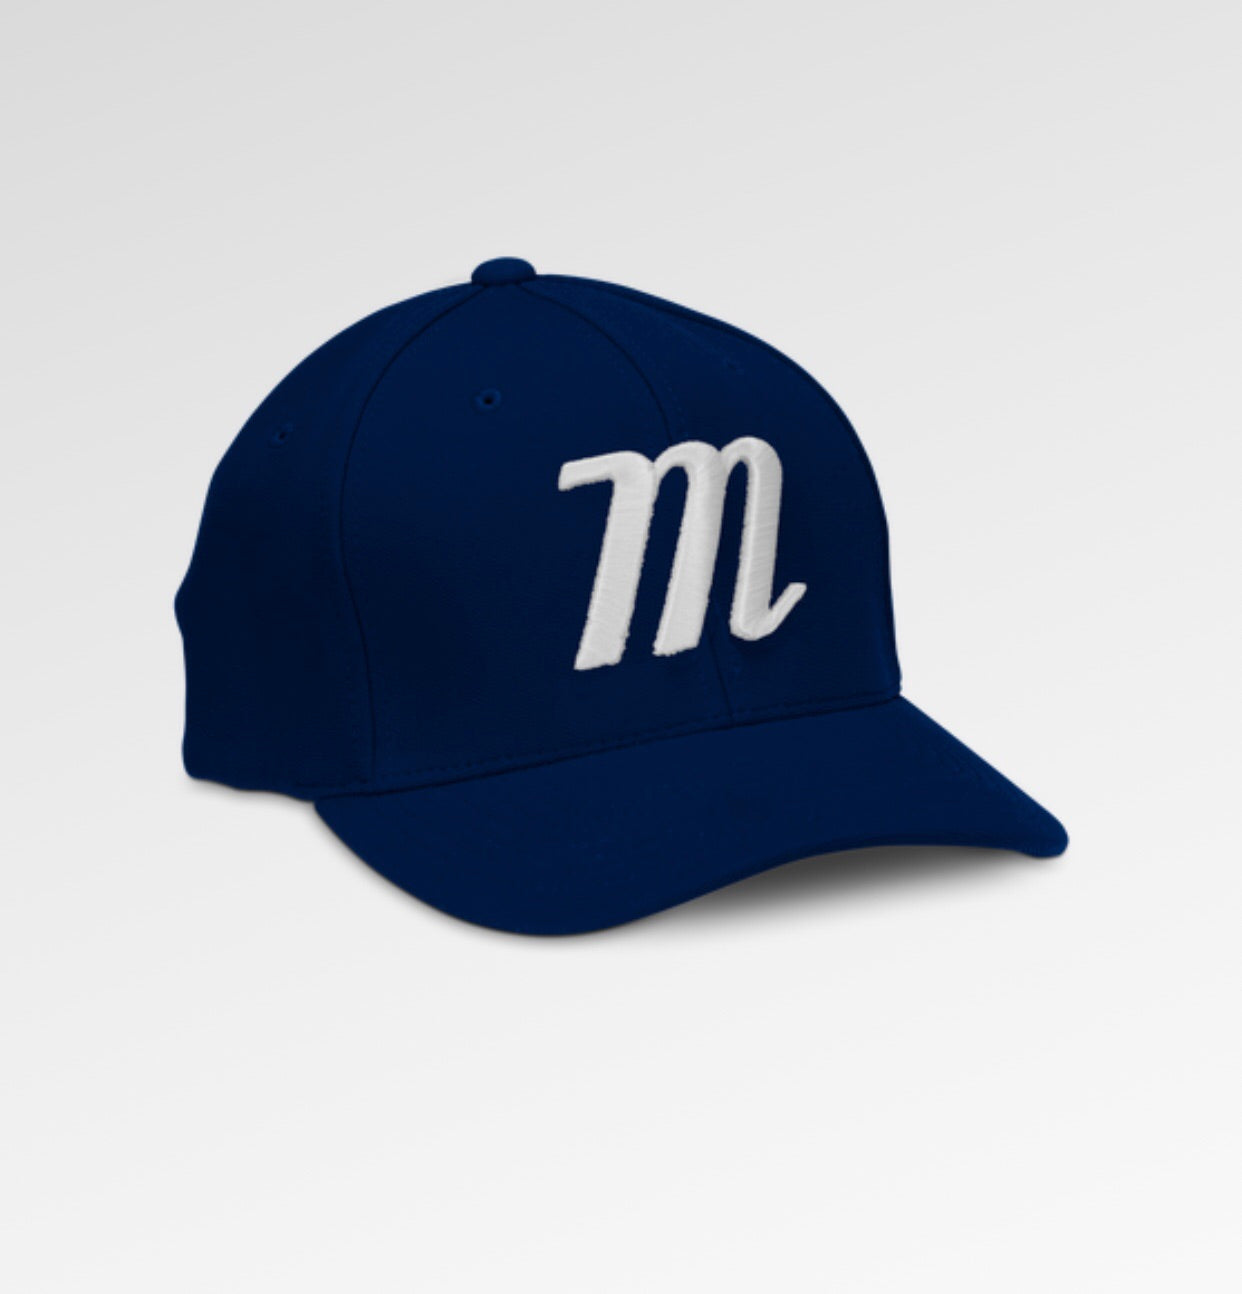 Marucci Stretch Hat